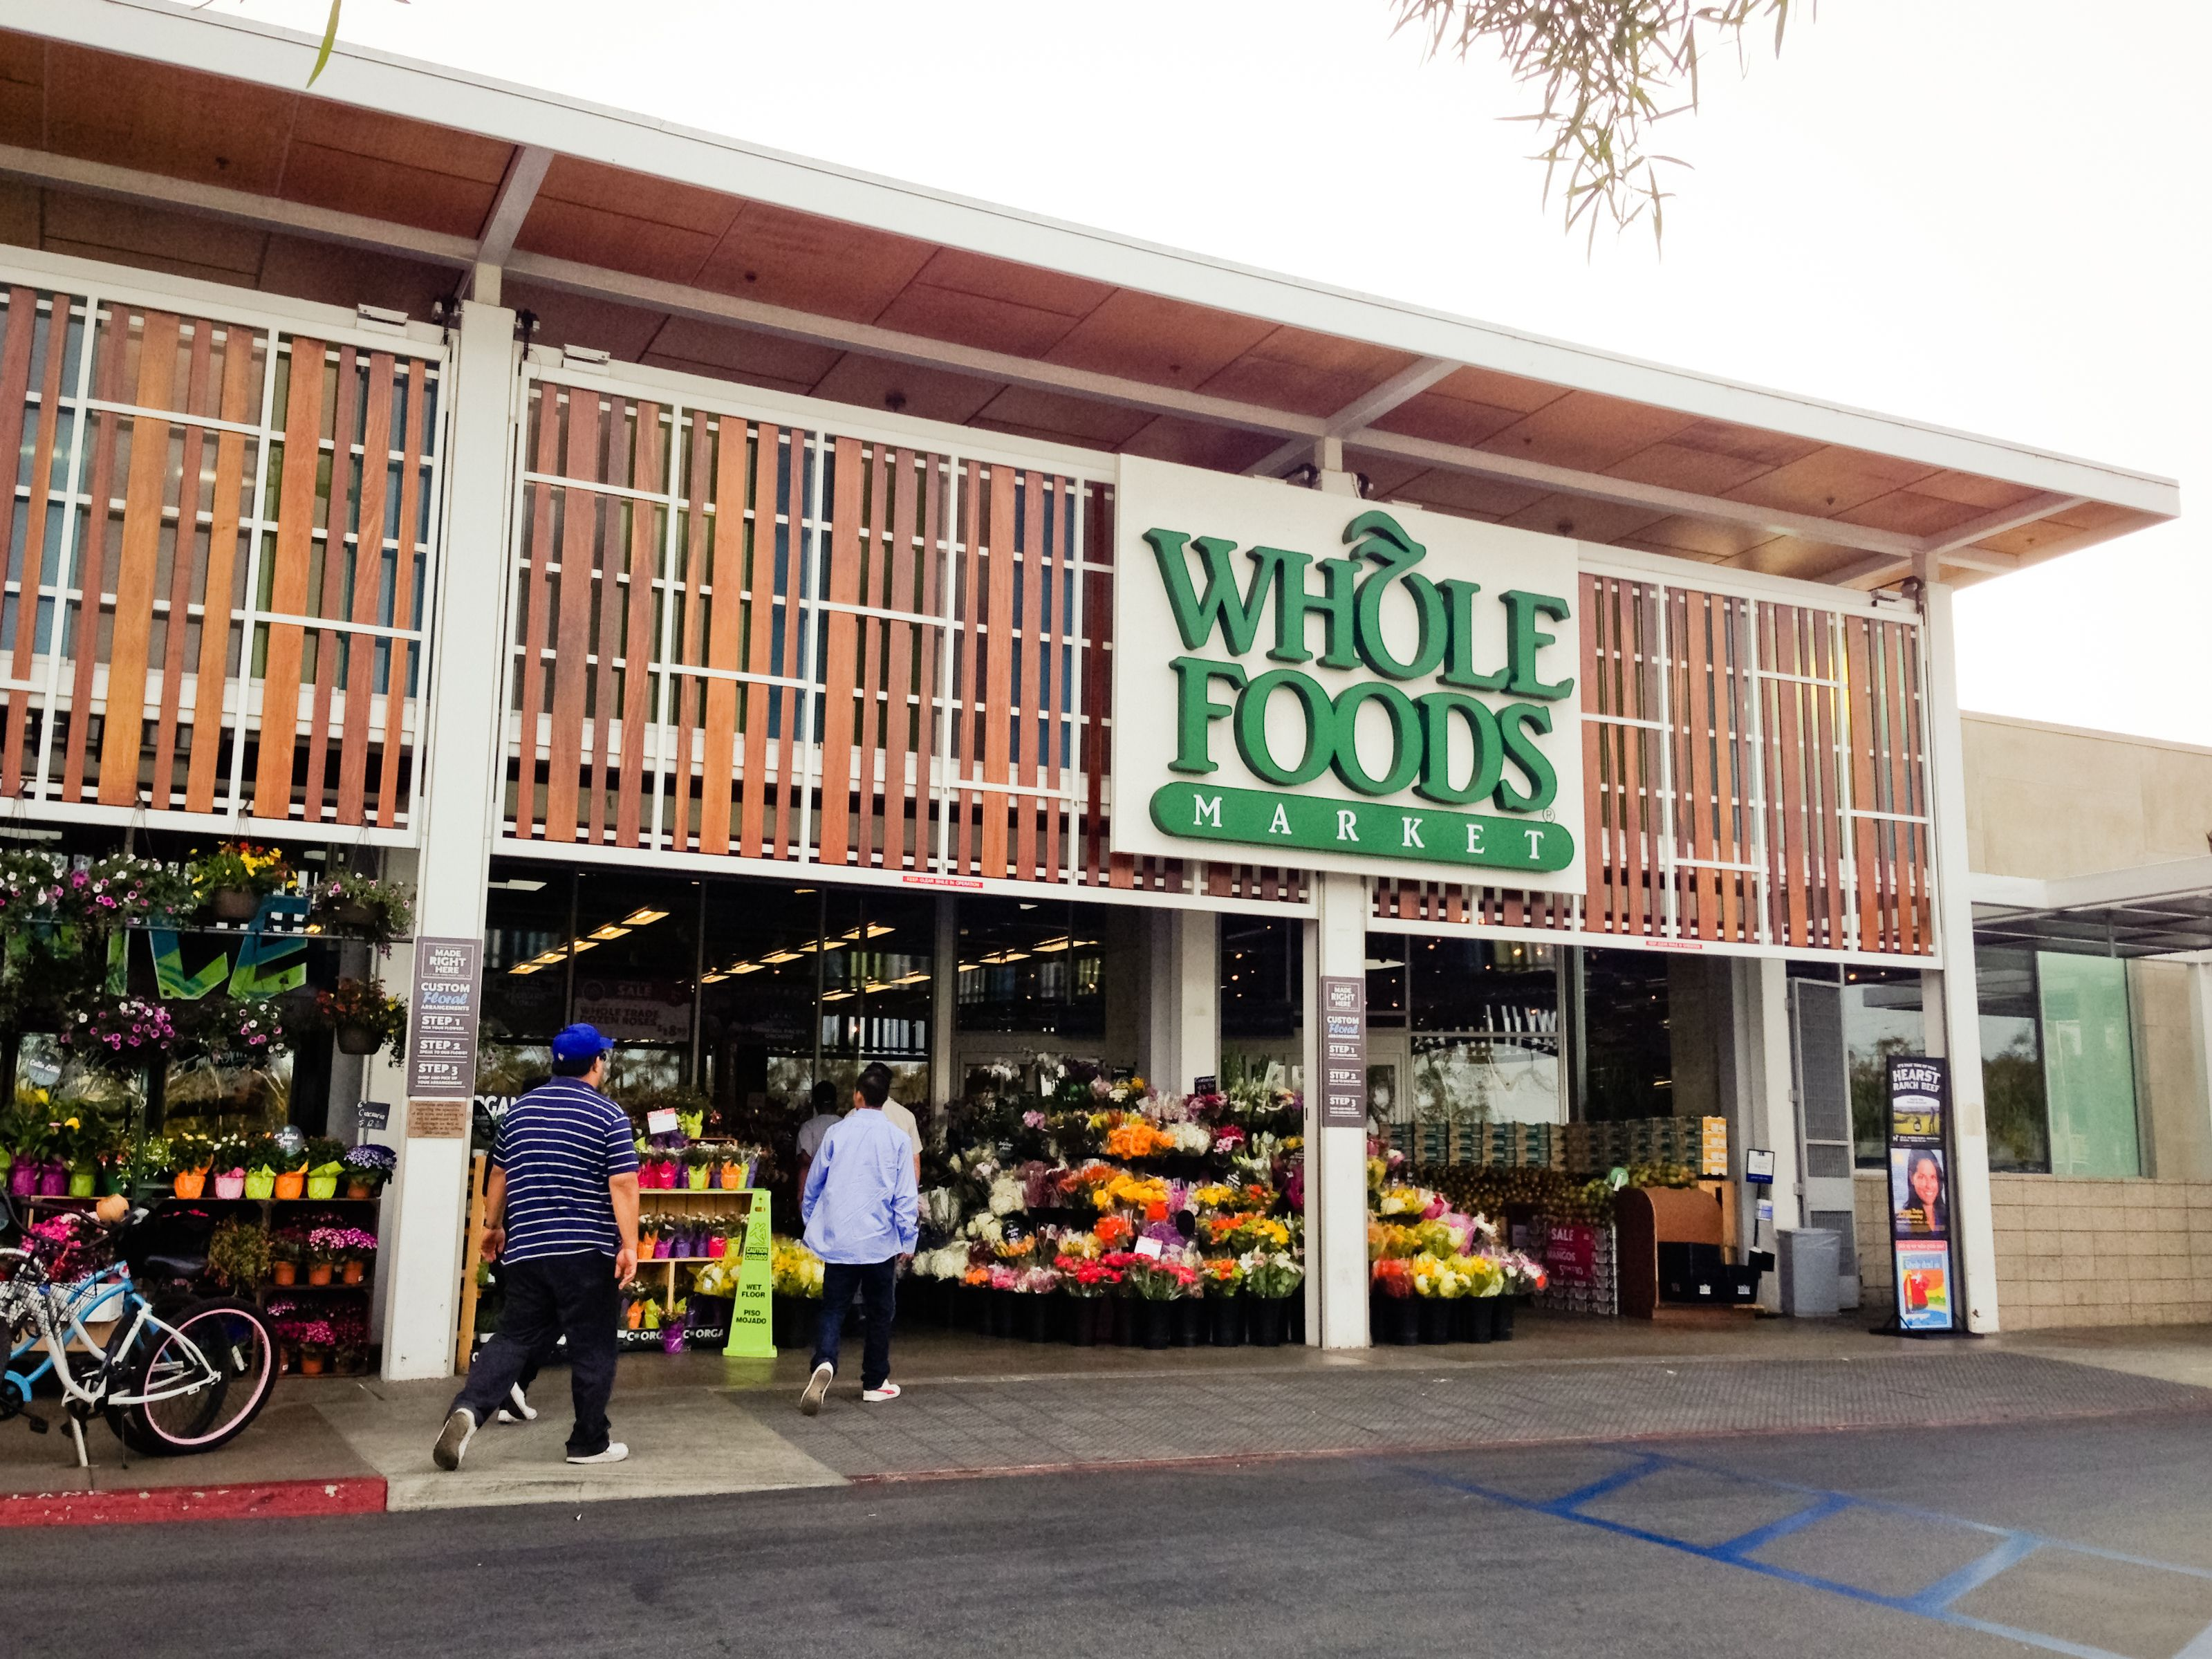 The Runner's Guide for What to Buy at Whole Foods